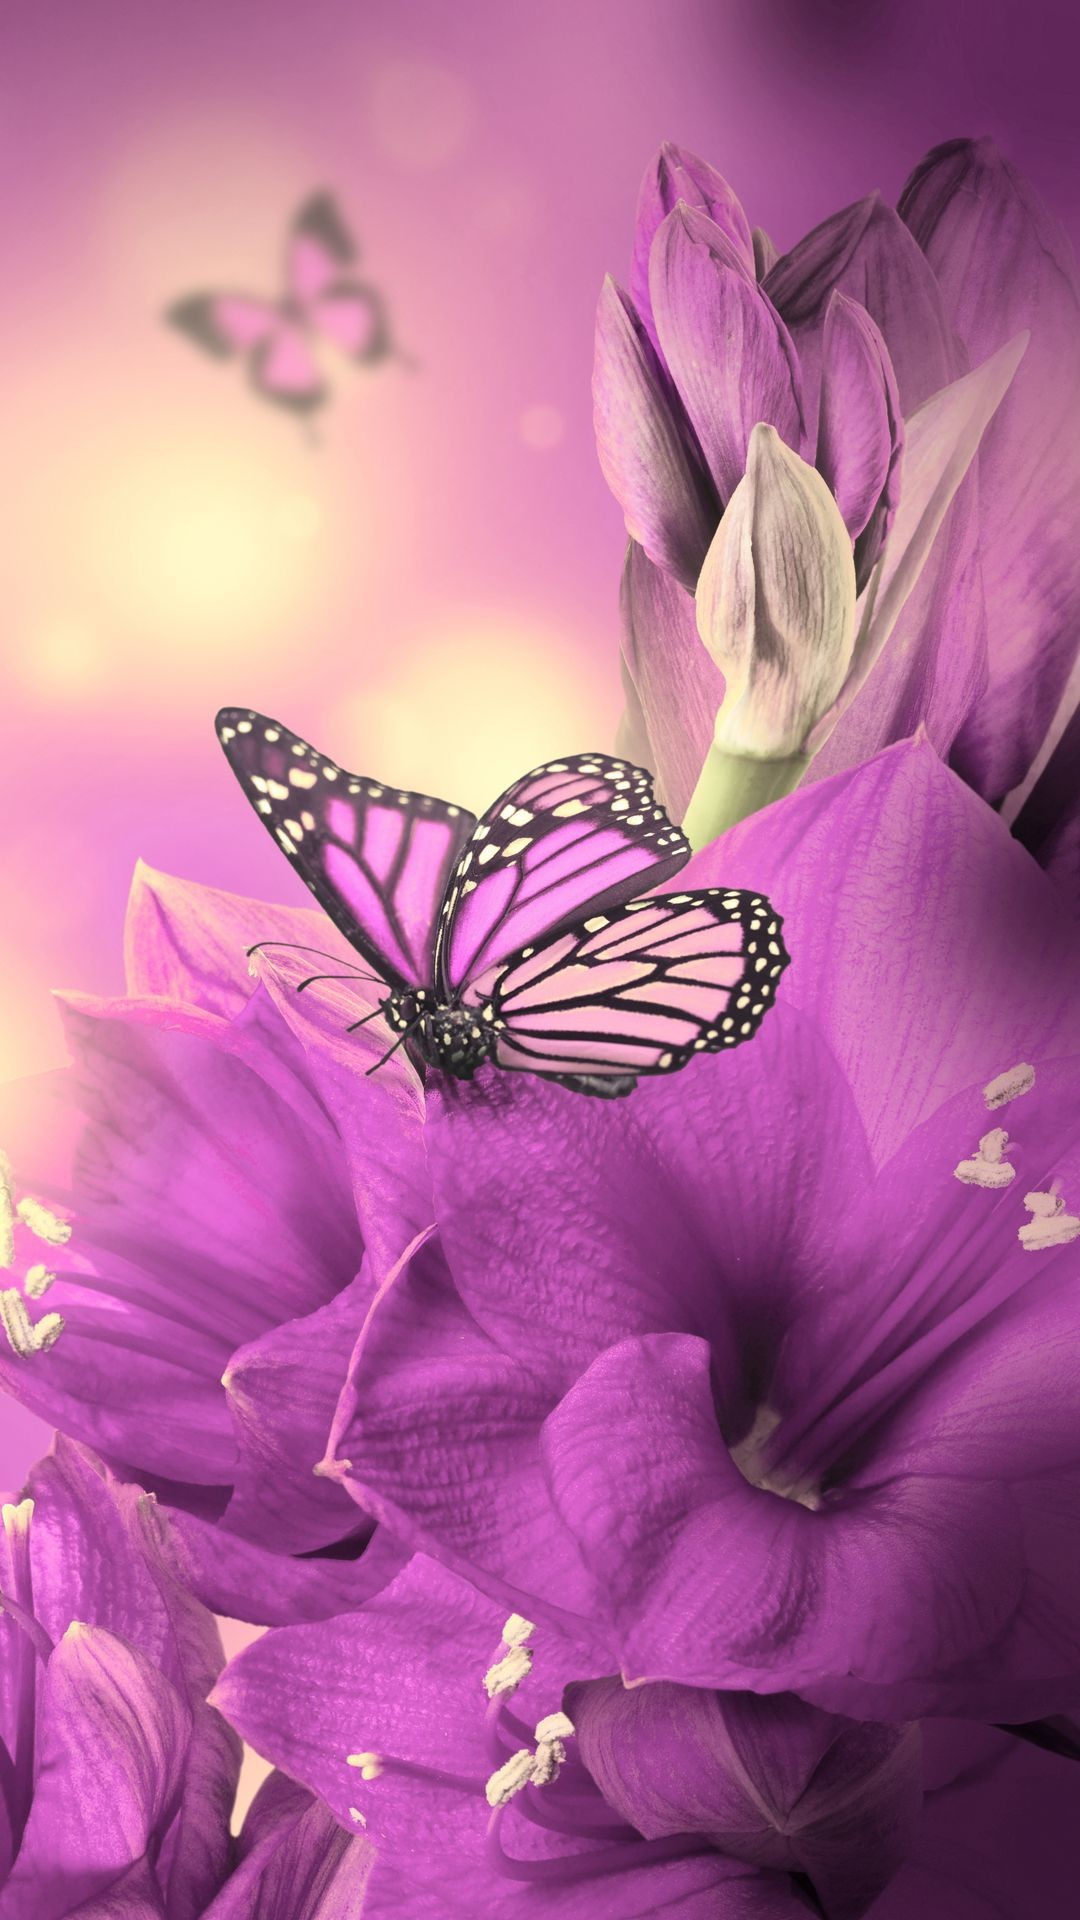 Animated butterfly wallpapers for mobile